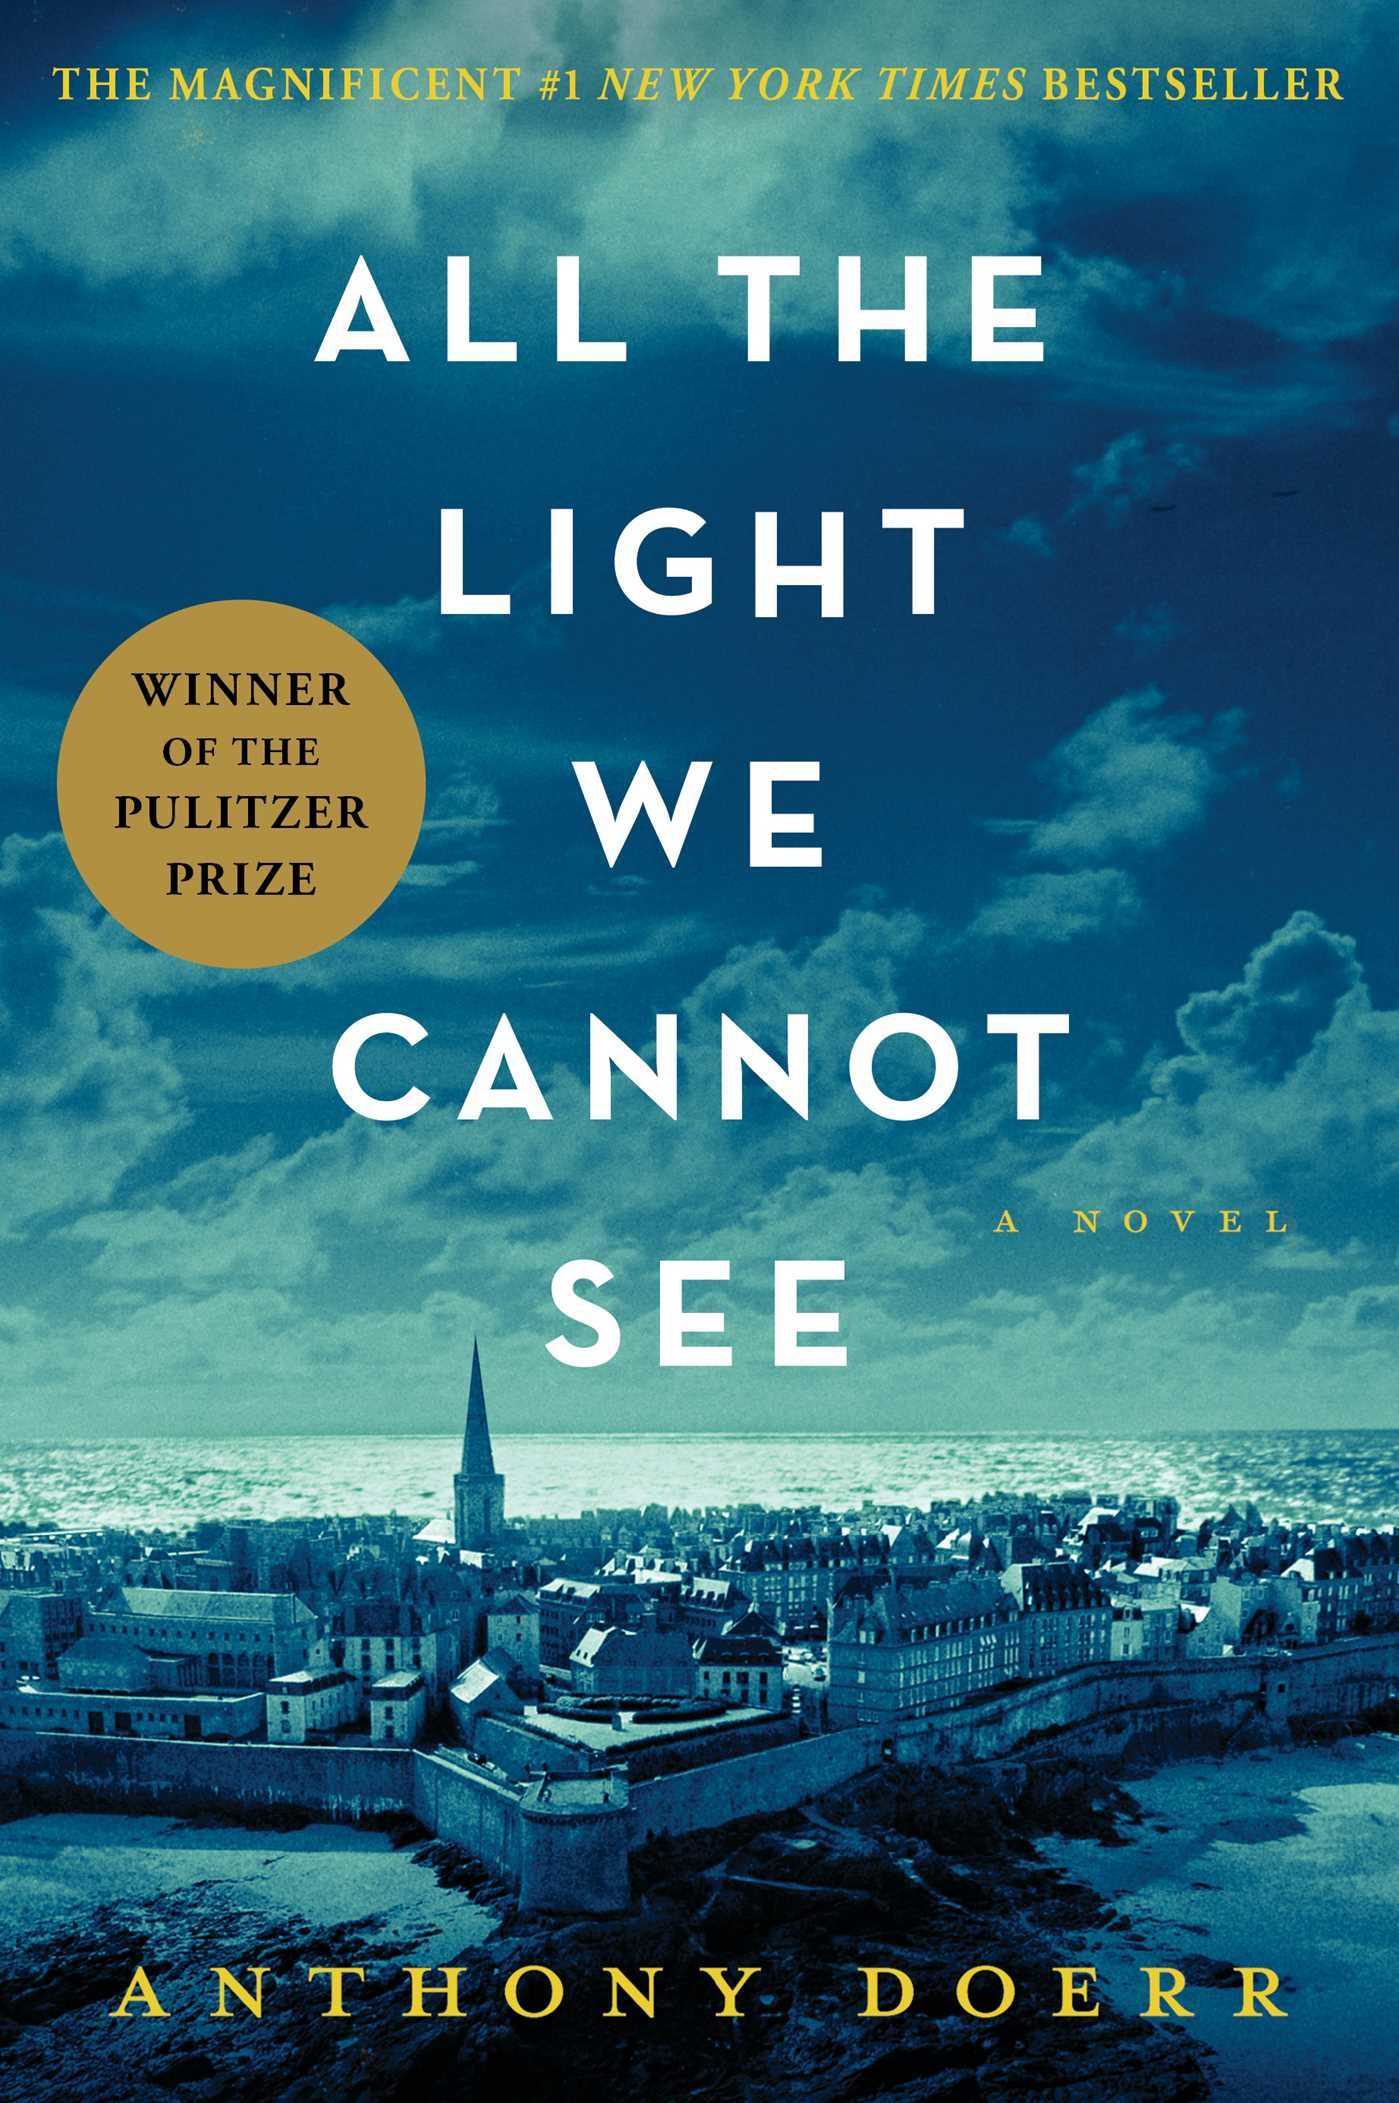 all-the-light-we-cannot-see-9781476746586_hr.jpg